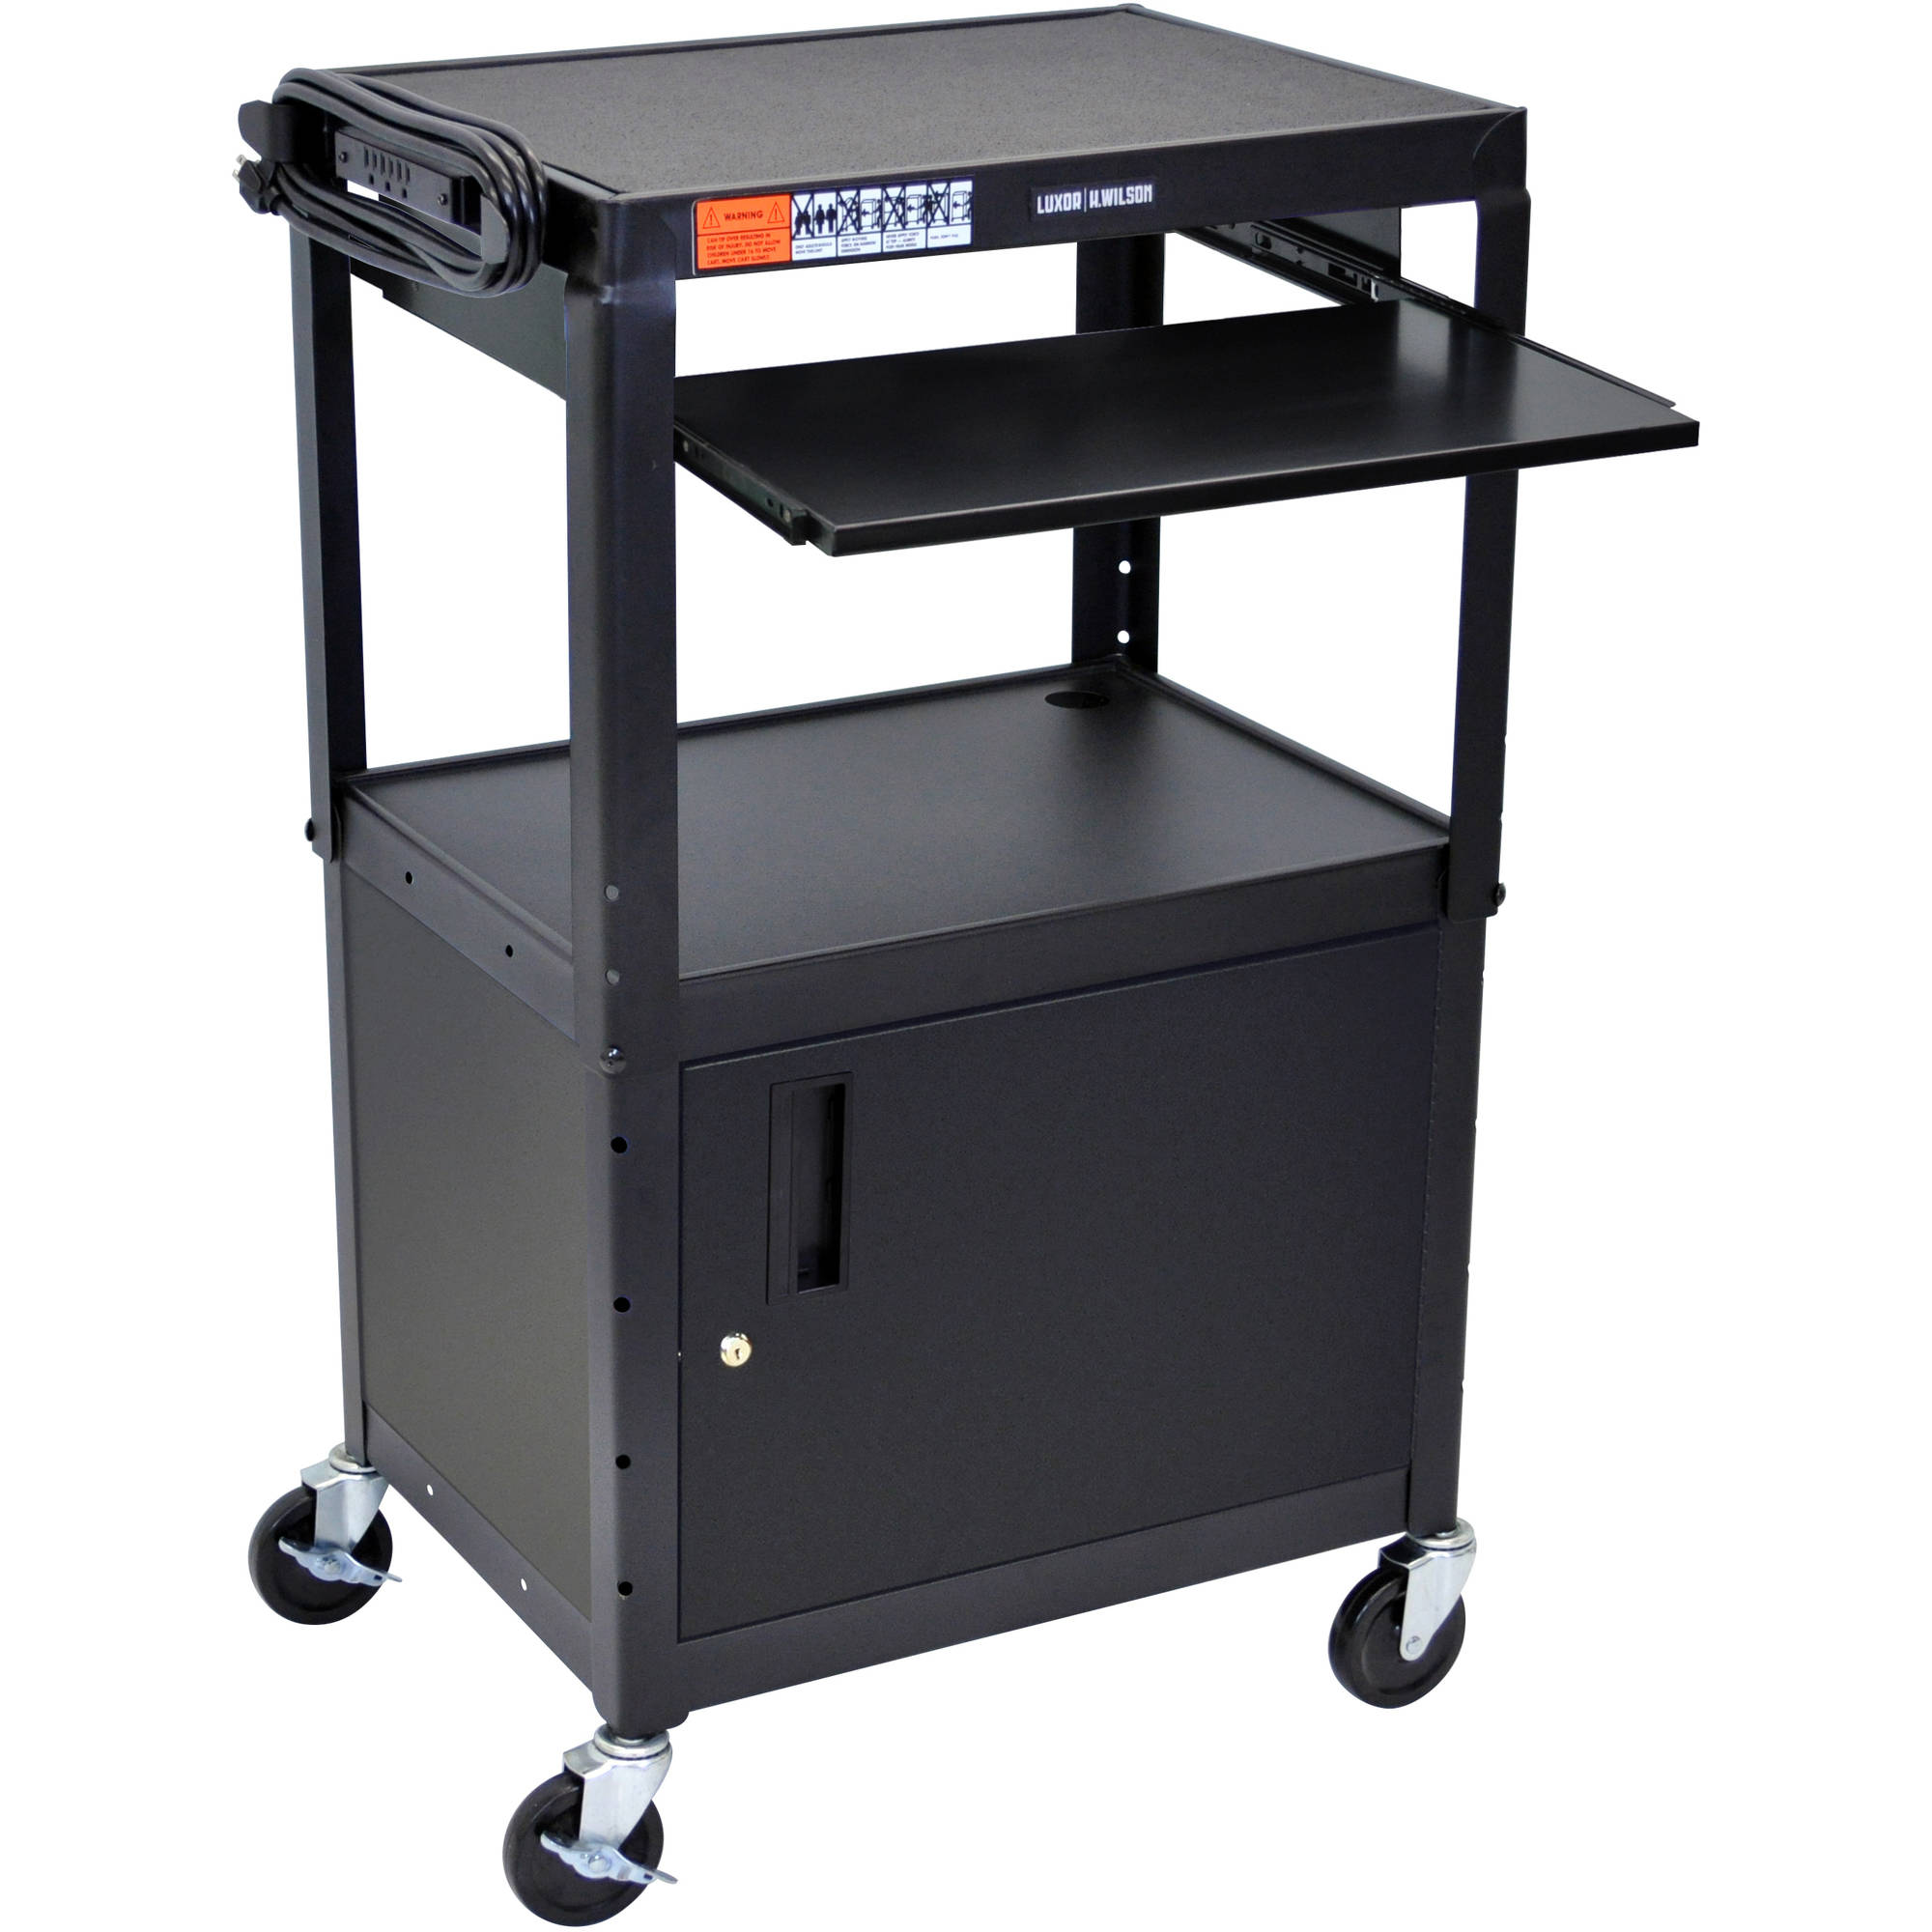 Luxor Steel Adjustable Height A/V Cart with Cabinet and Pullout Keyboard Tray